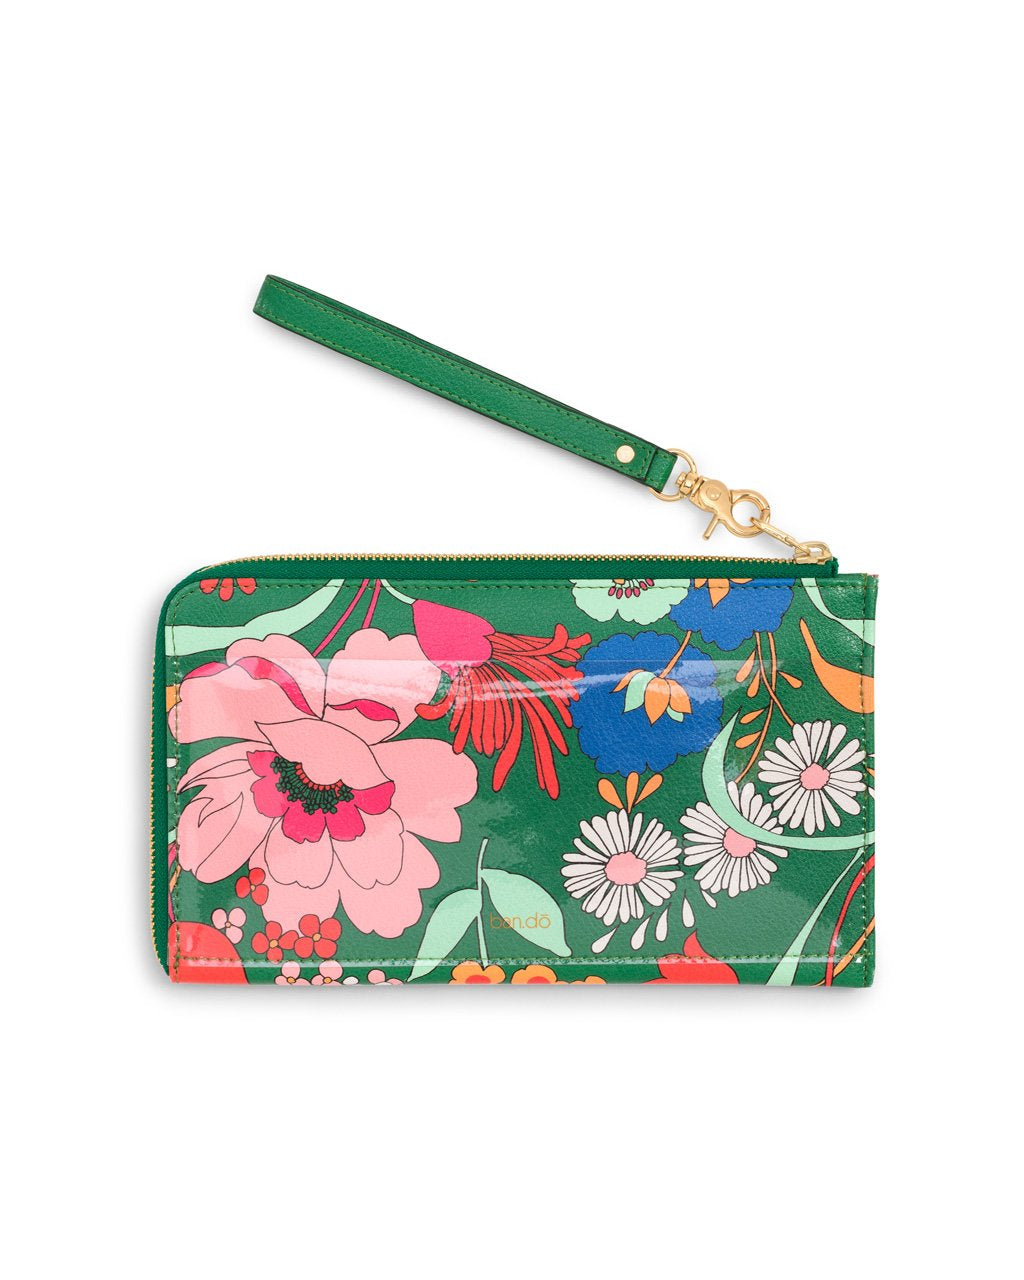 Travel wallet includes removable wristlet strap and back PVC pocket